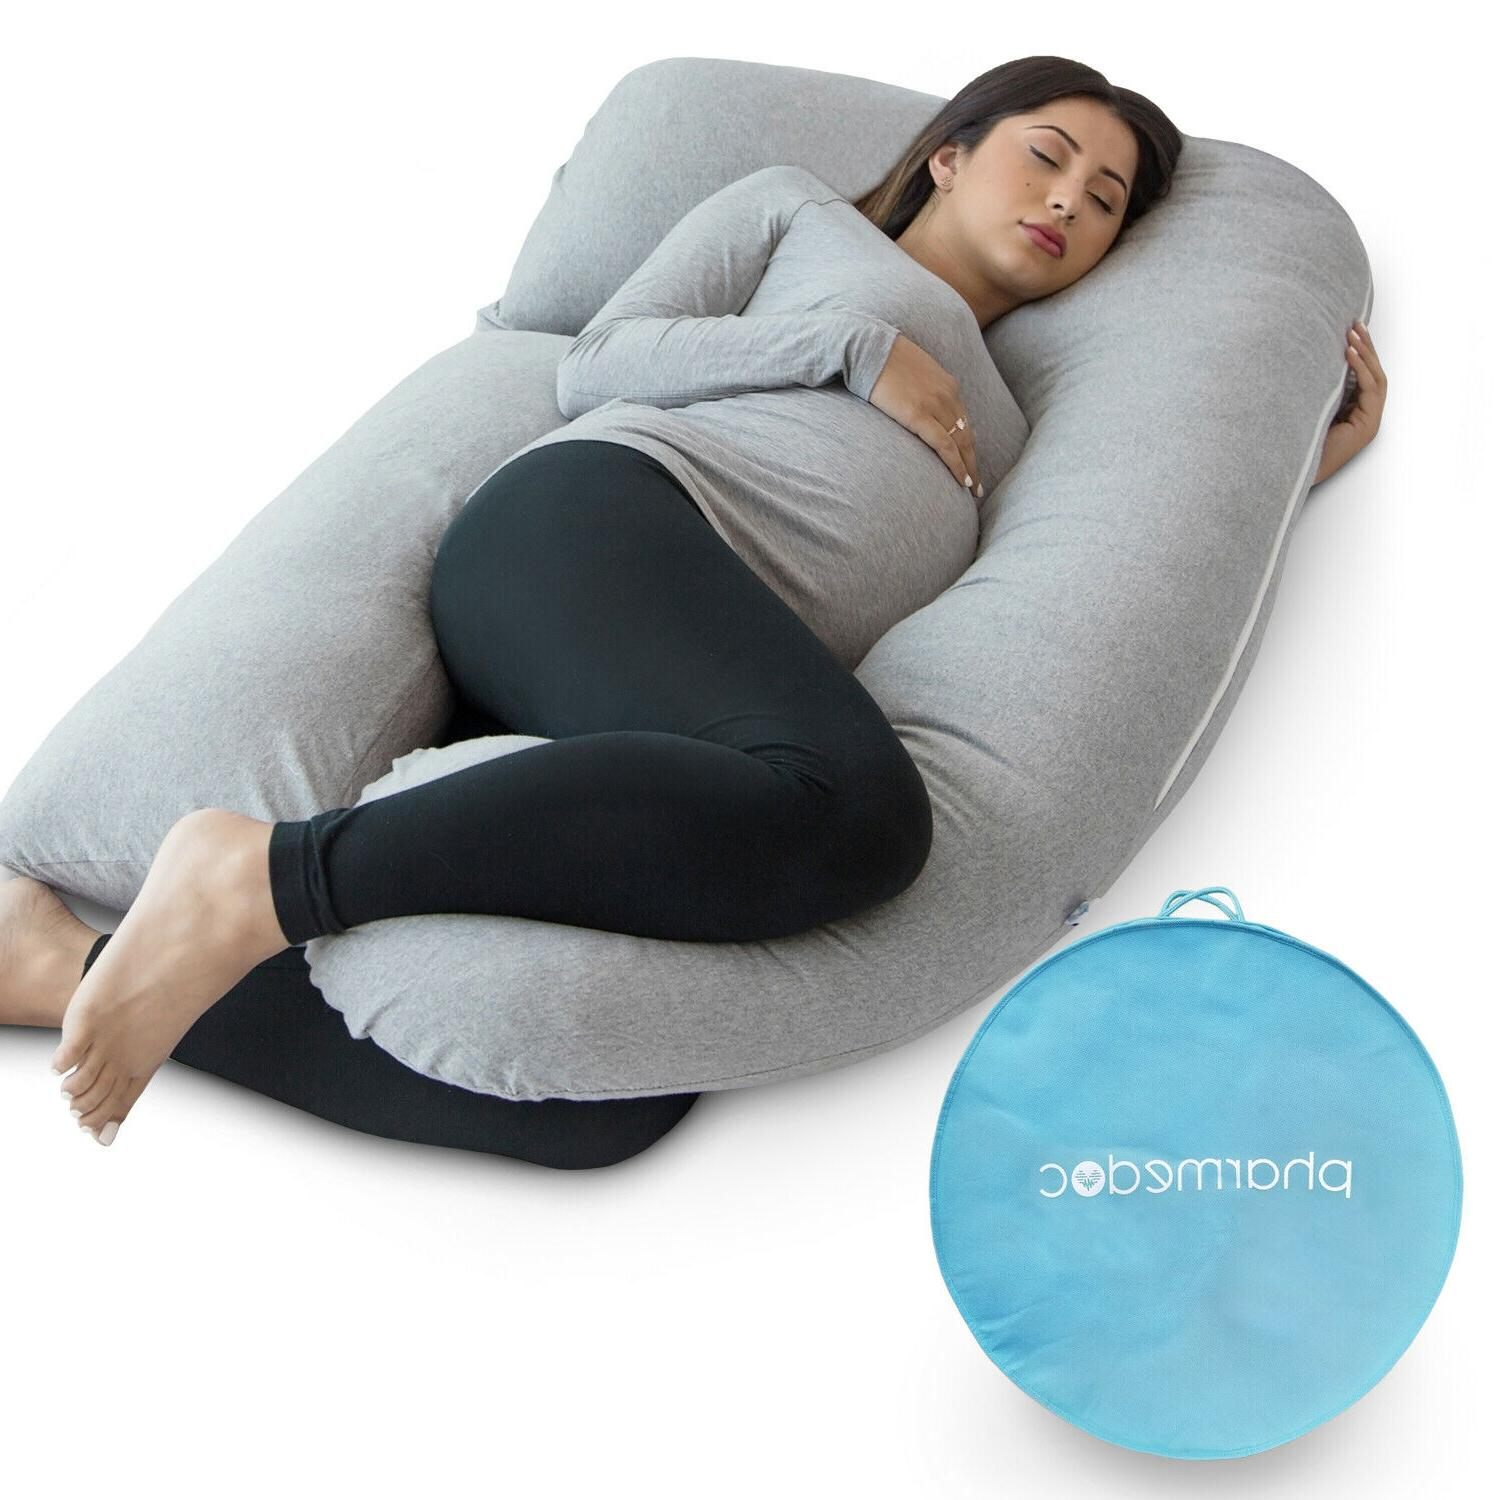 U-Shaped Full Body Pregnancy Pillow by PharMeDoc